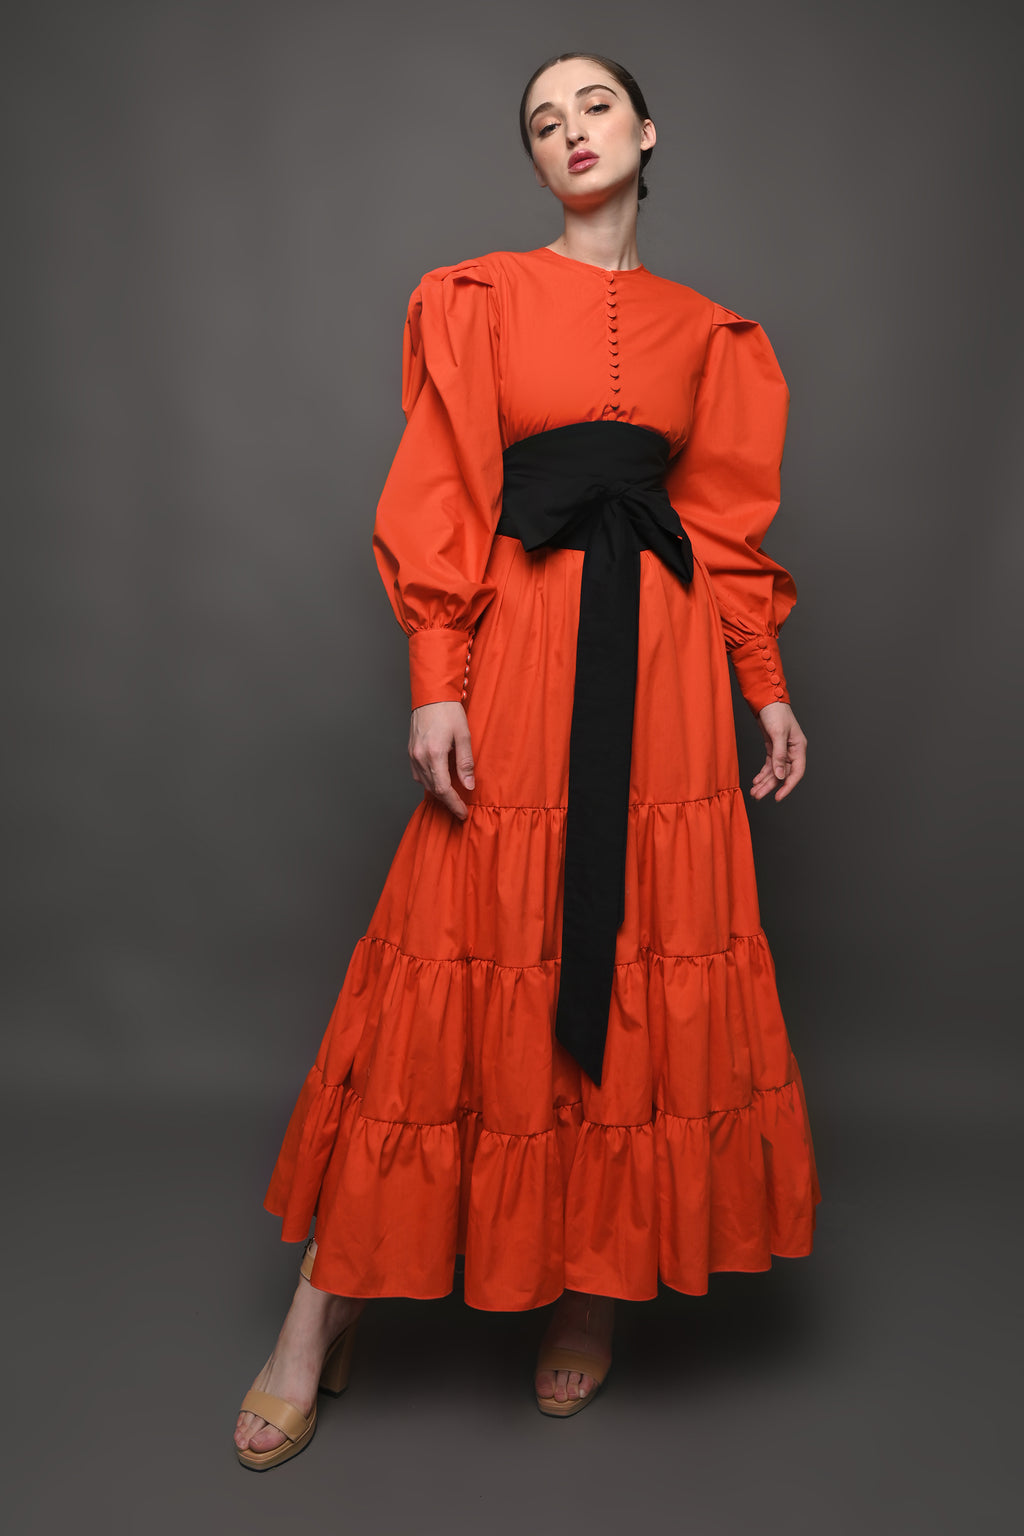 Ayoka Dress in Red Orange